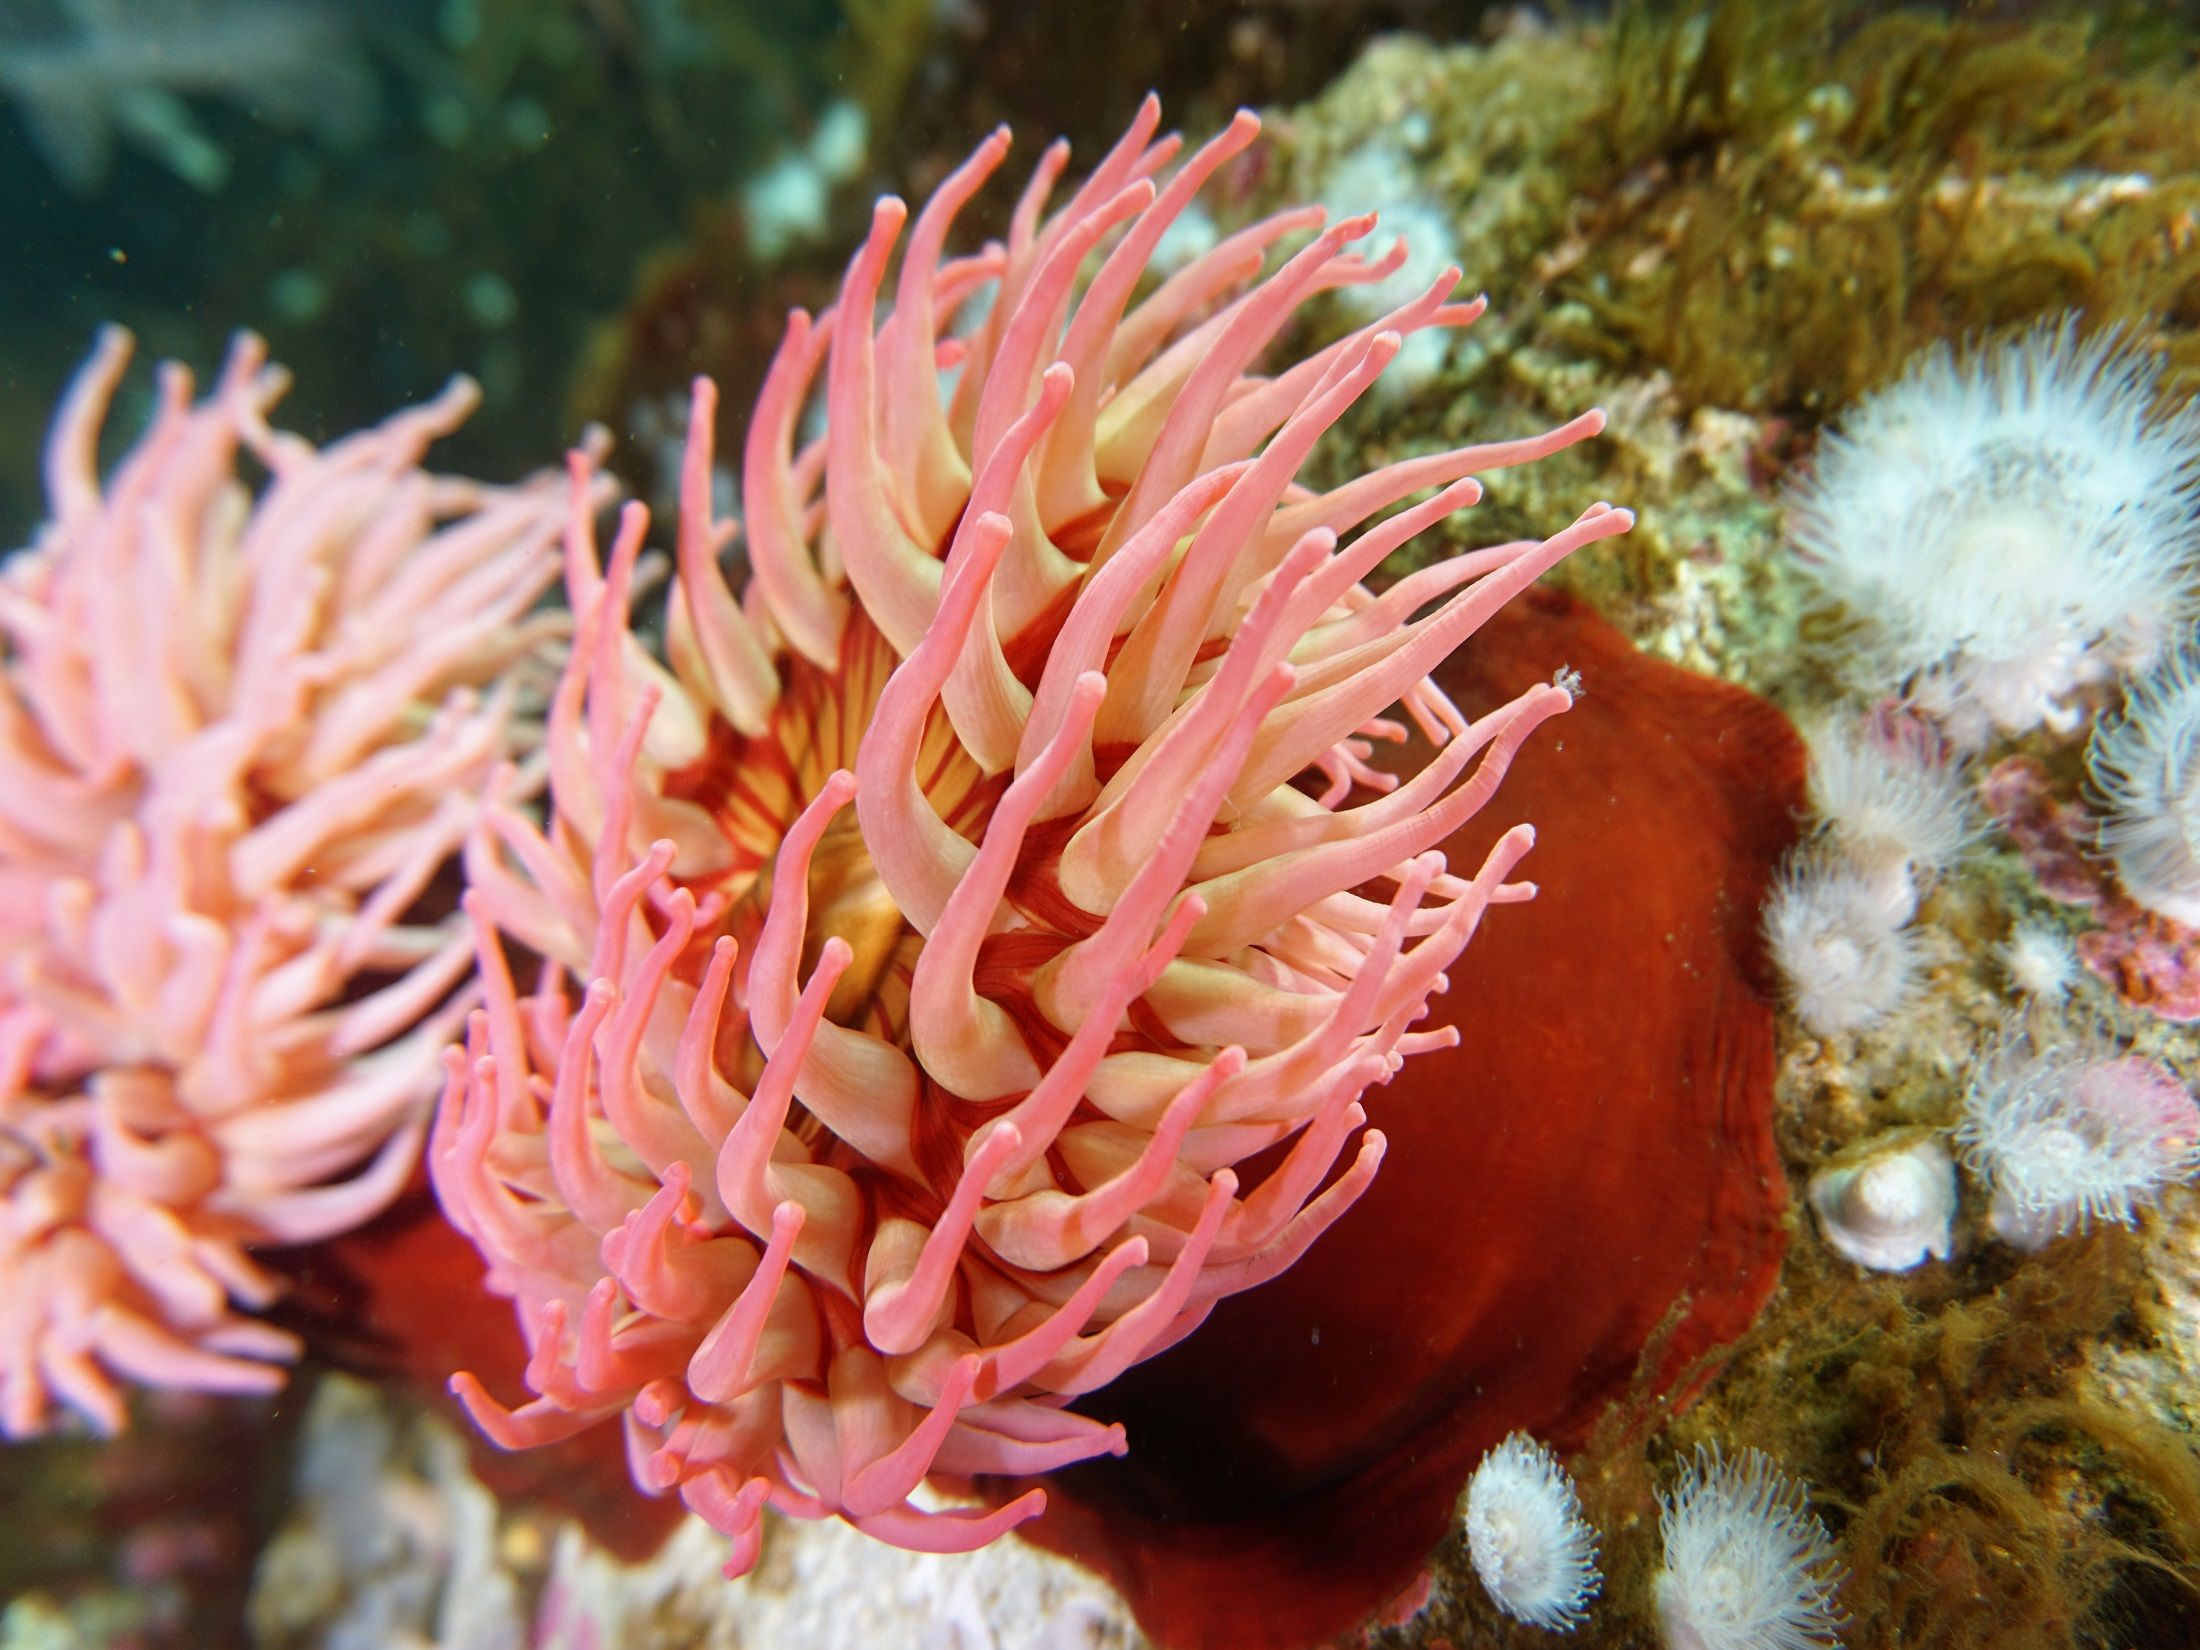 Sea Anemone Seattle Aquarium Akti Nii Ili Morskie Anemo Ny Lat Actiniaria Otryad Morskih Strekayushih Iz Klassa Kor In 2020 Sea Anemone Anemone One Piece Ship